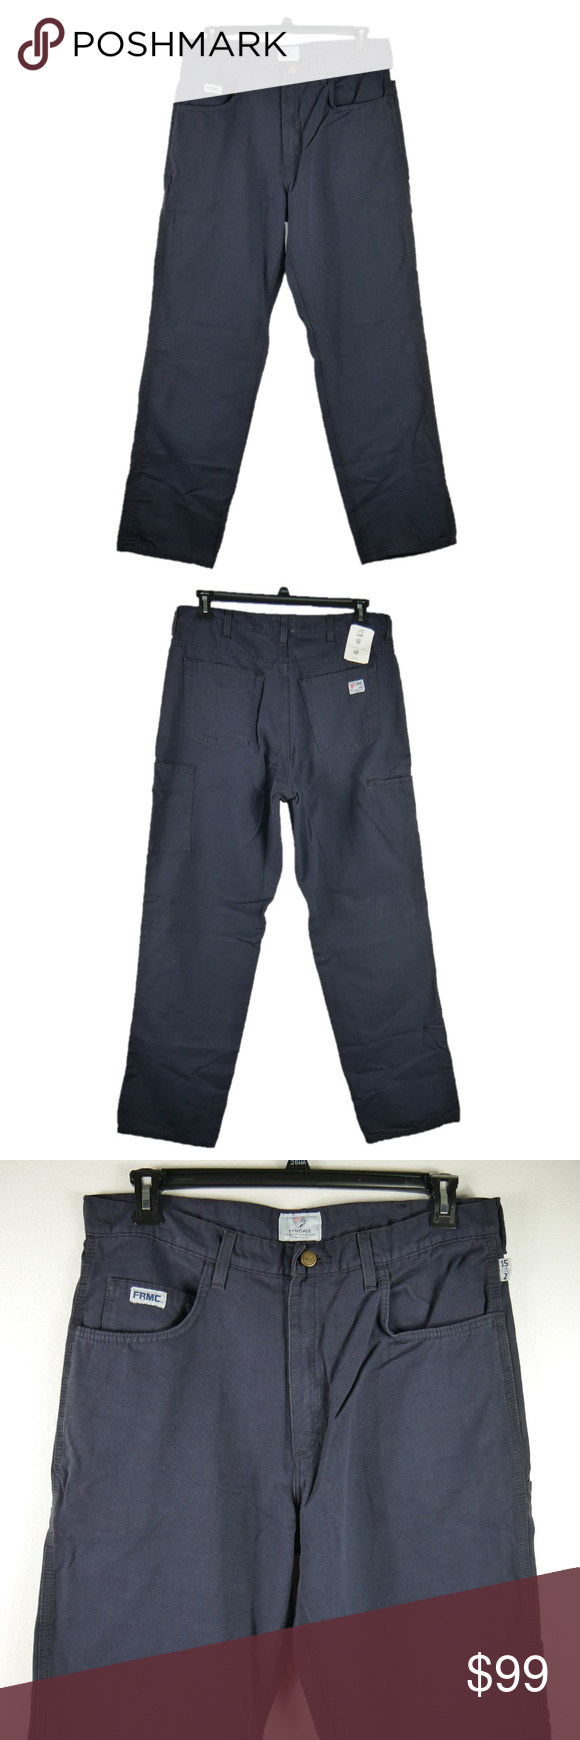 e4050fc328bb Tyndale FR Flame Resistant Summerweight Pant 36X32 Tyndale Fr Flame  Resistant Summerweight Pant 15 Cal Cat2